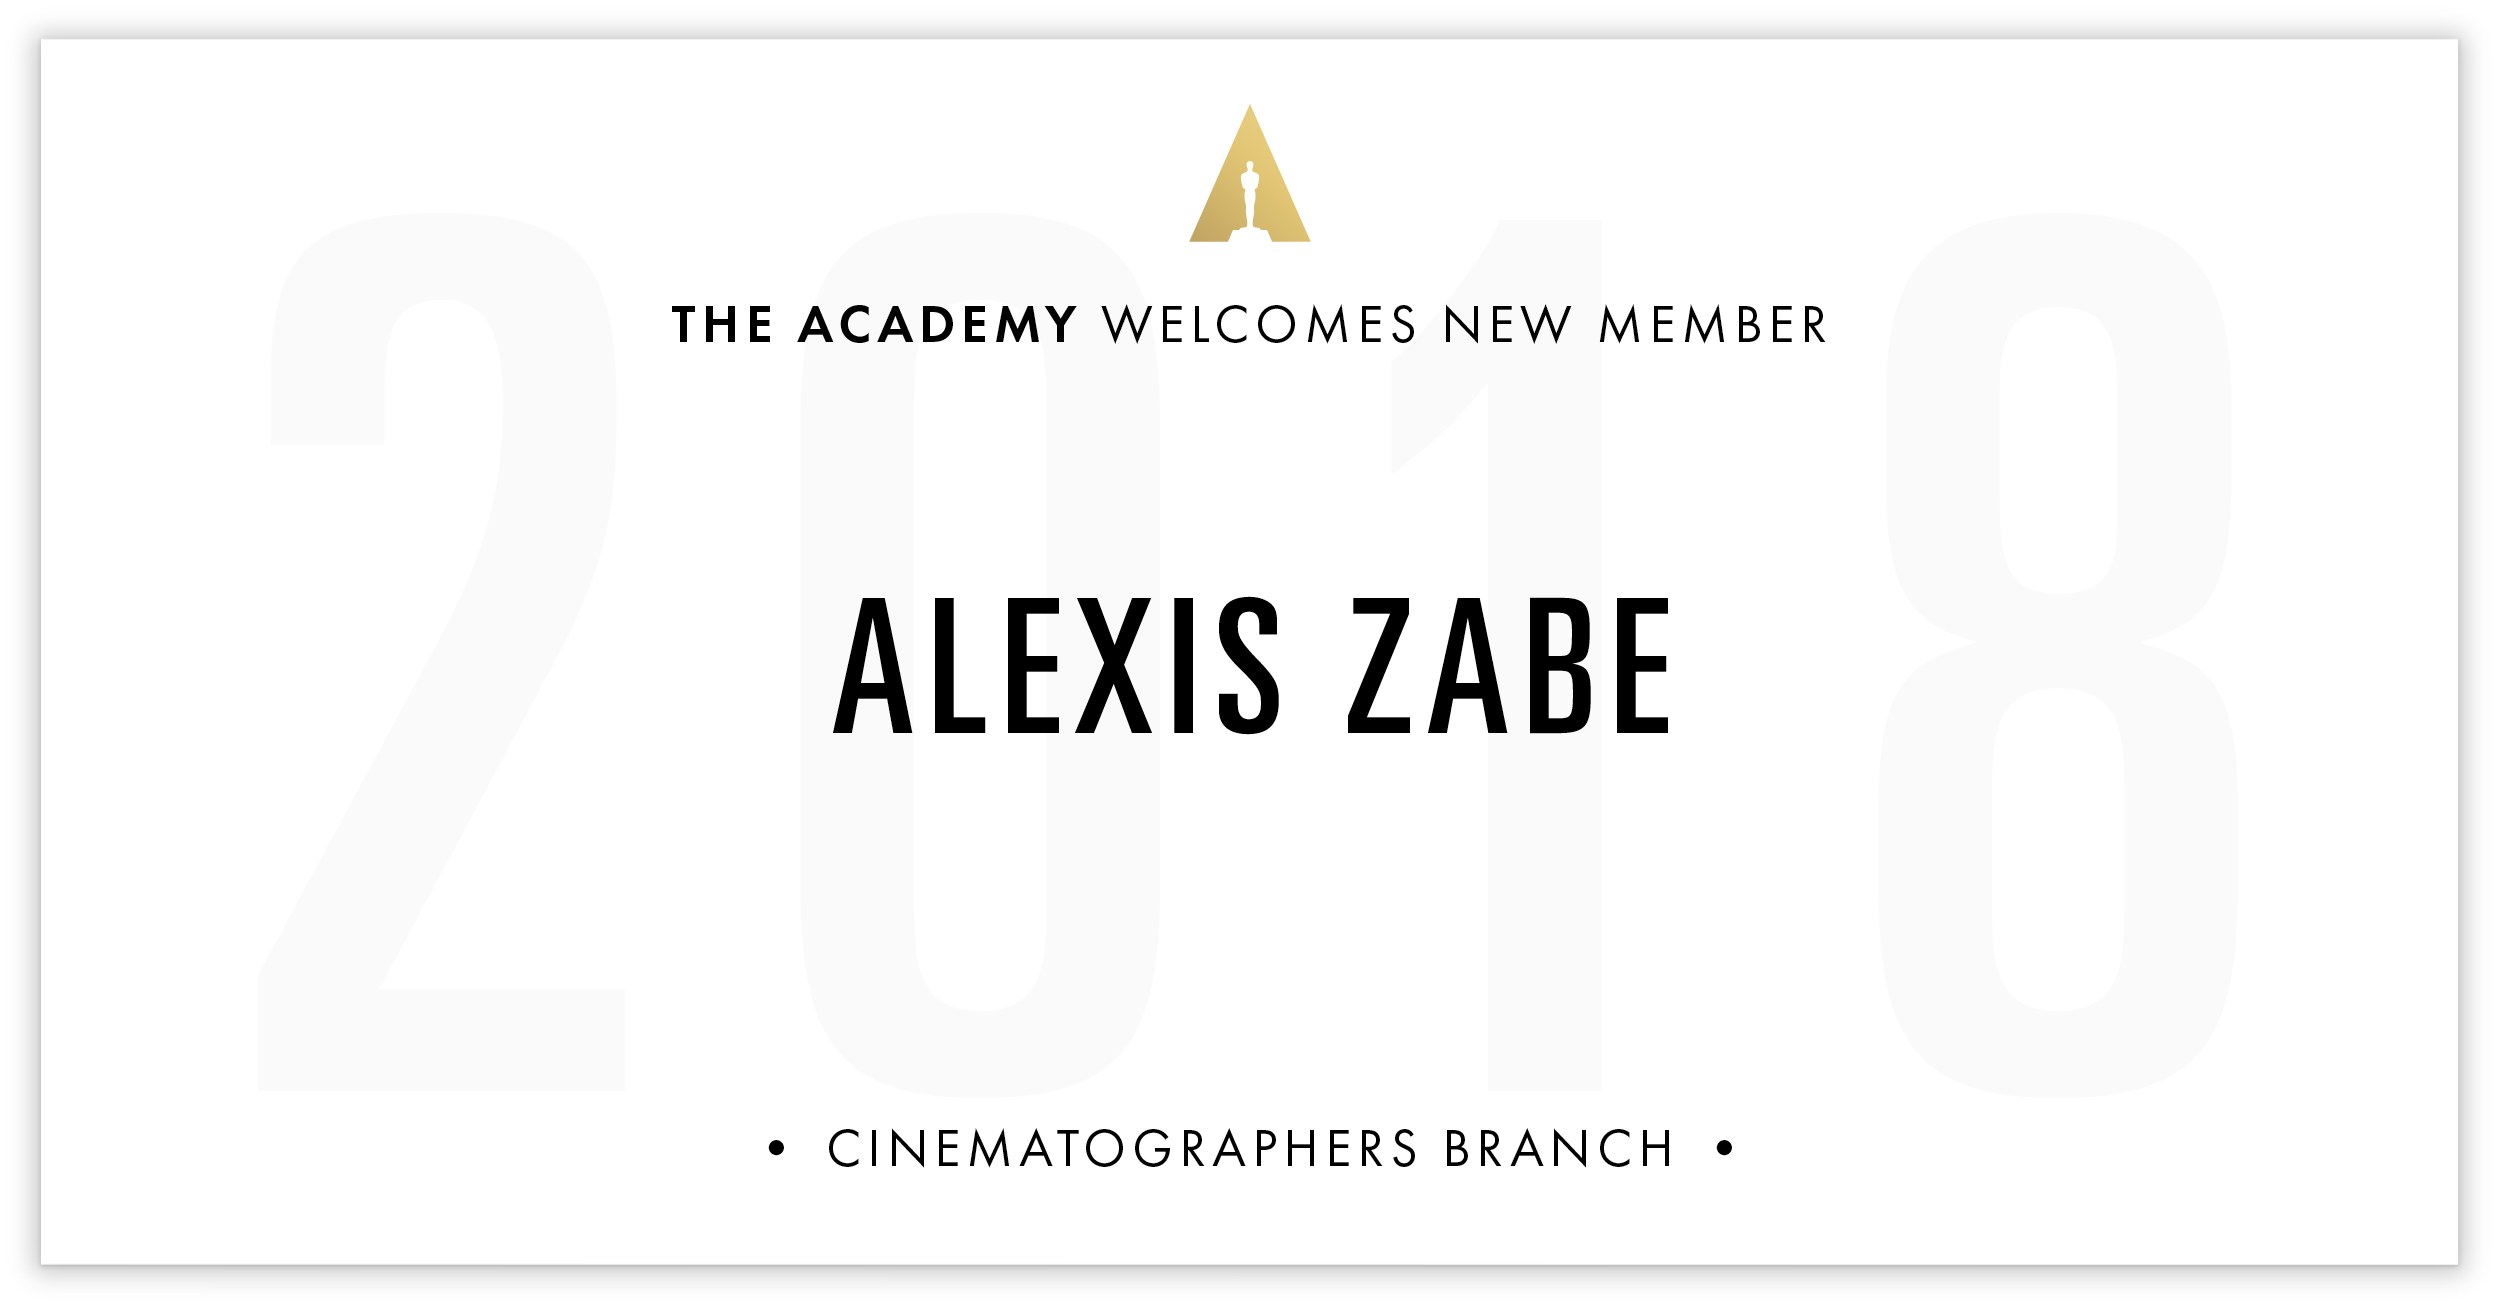 Alexis Zabe is invited!